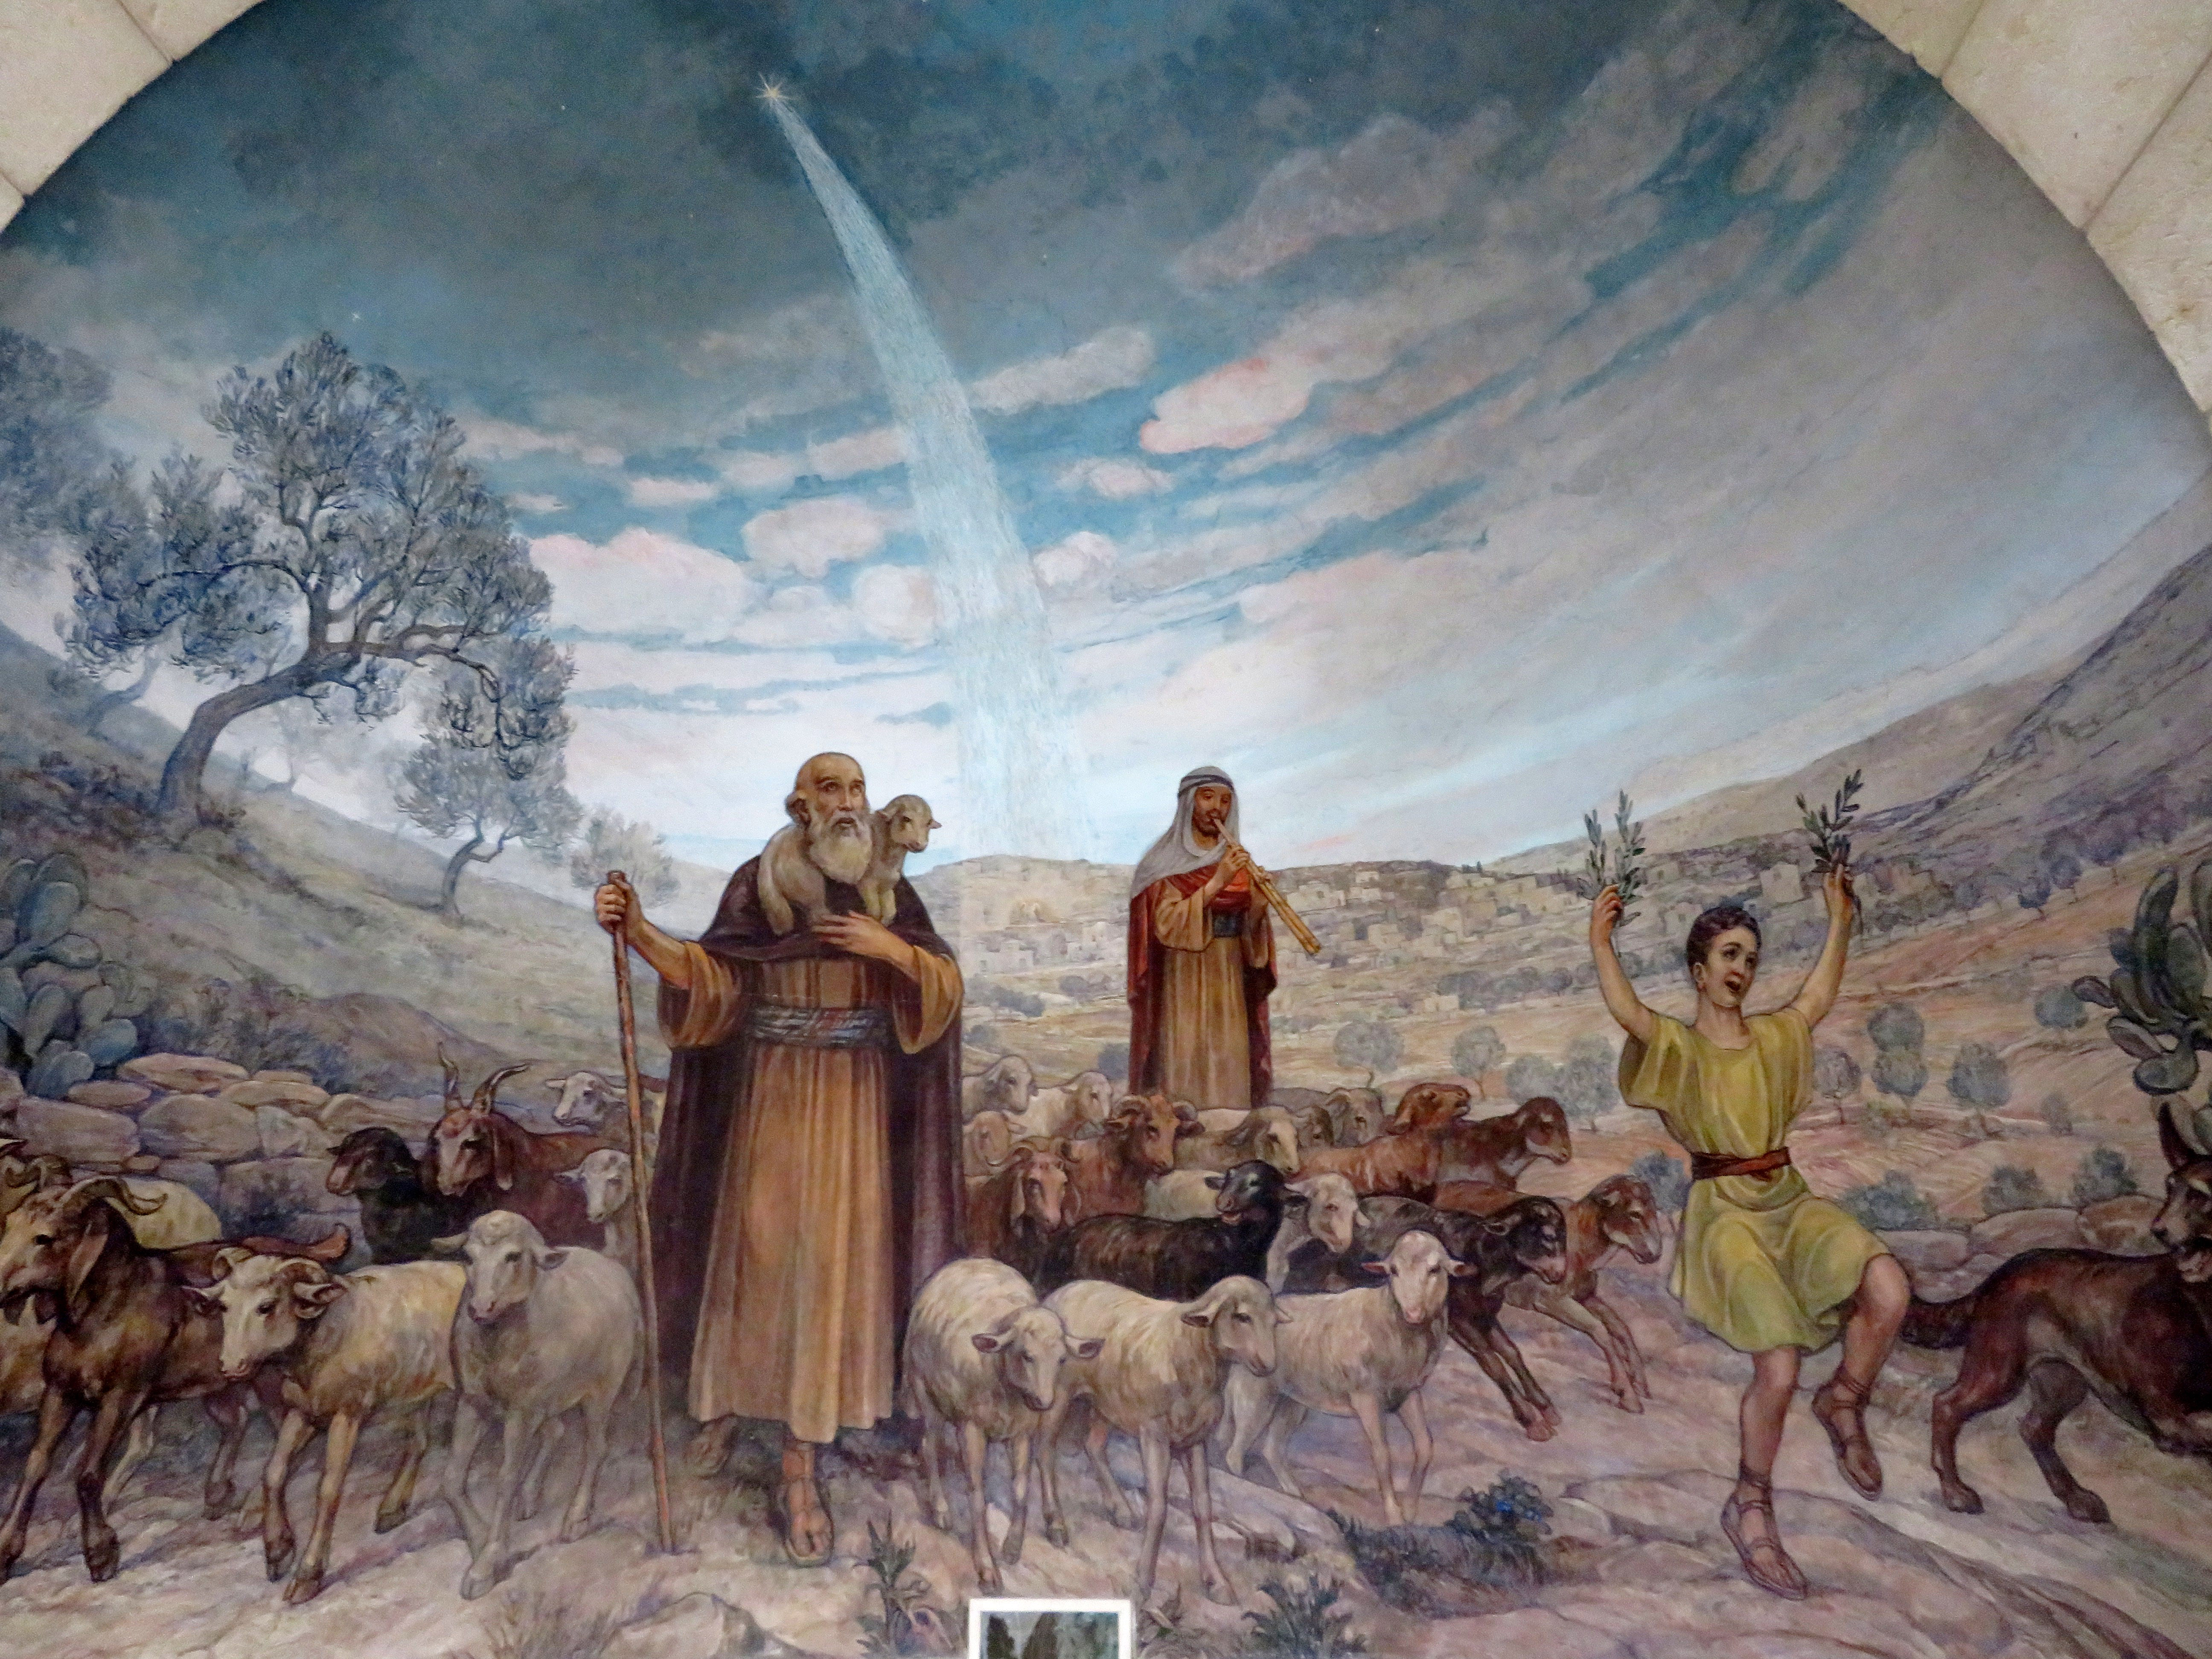 A fresco in the Chapel of the Angels shows the joy of the shepherds, upon returning to their homes and flocks.